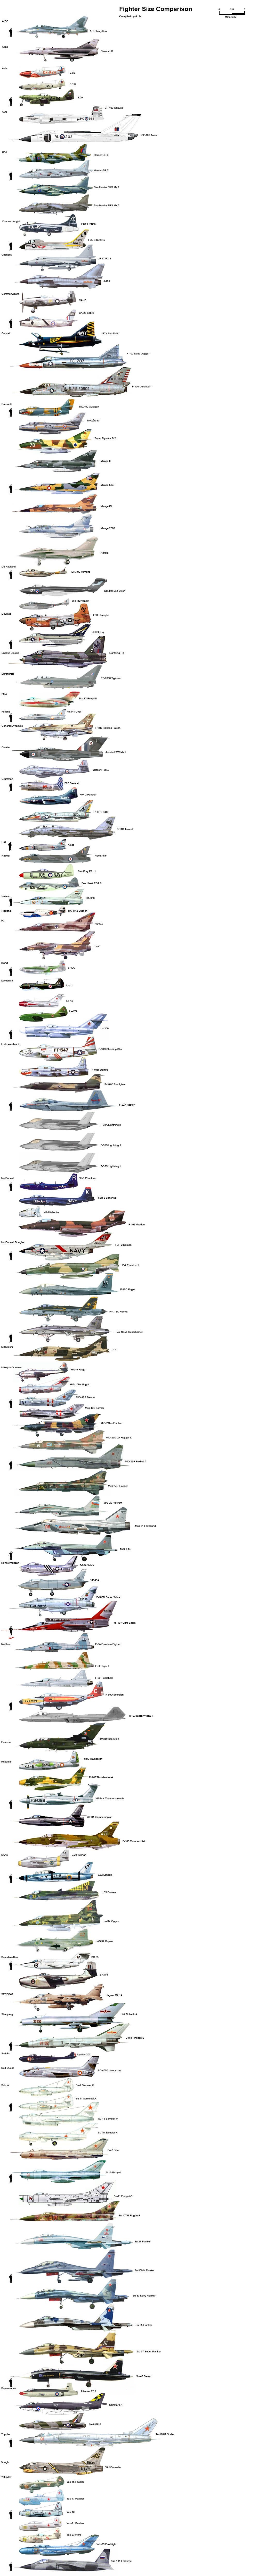 Fighter Jets in Comparison